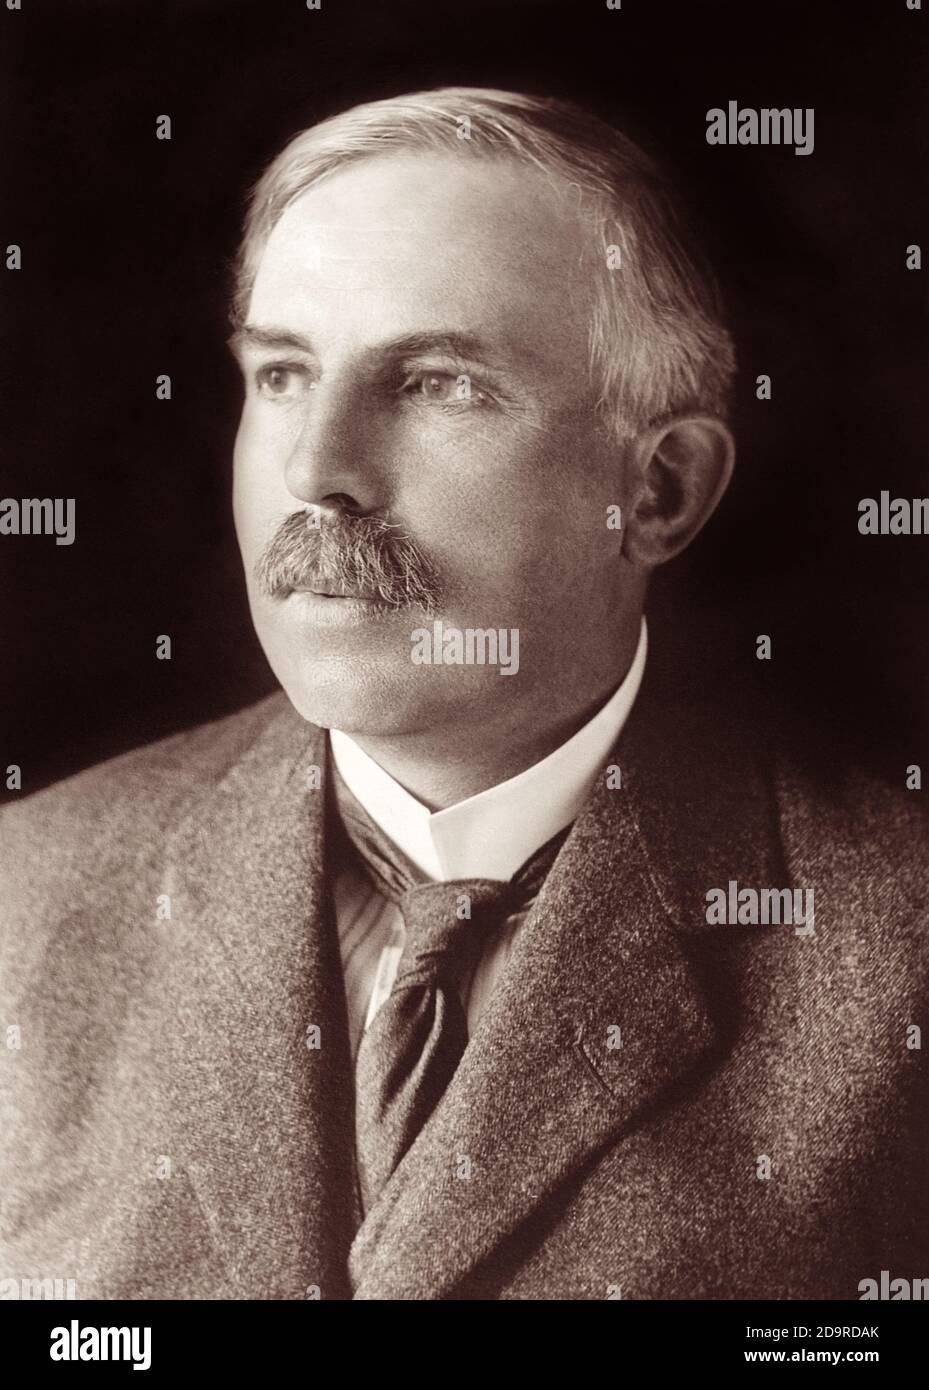 Ernest Rutherford (1871–1937), New Zealand–born British physicist known for his pioneering studies of radioactivity and the atom, and who came to be known as the father of nuclear physics. Stock Photo